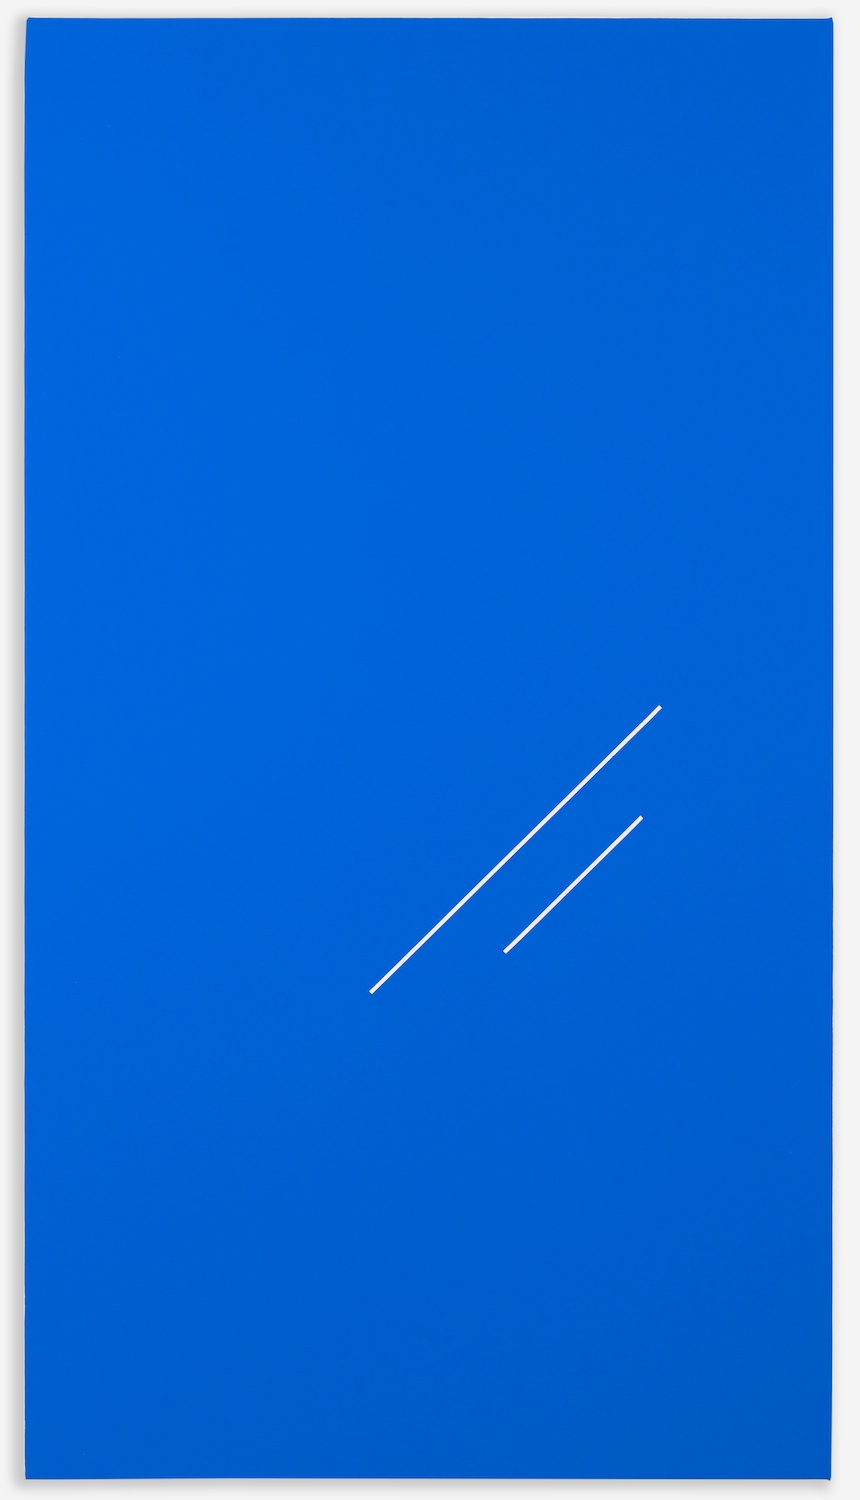 "Paul Cowan BCEAUSE THE SKY IS BULE    2013 Chroma-key blue paint on canvas  48"" x 26""  PC094"